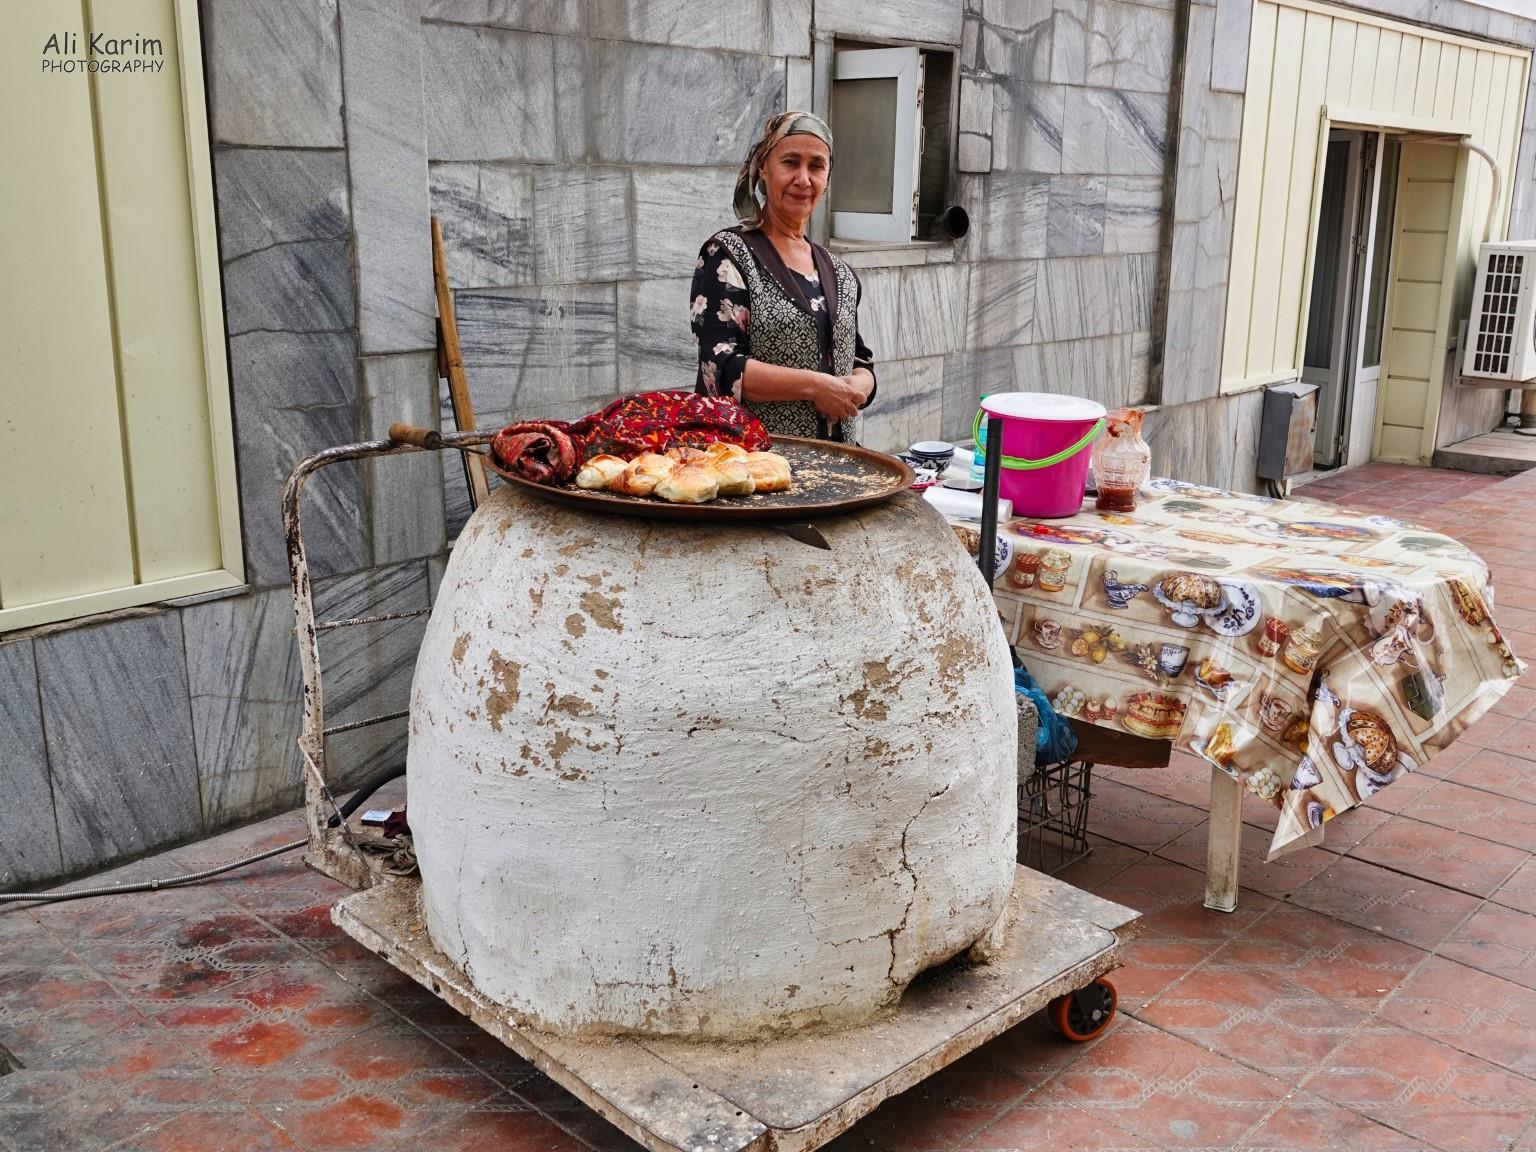 More Samarkand, Mobile tandoor, where samsa's were being baked. What a great idea